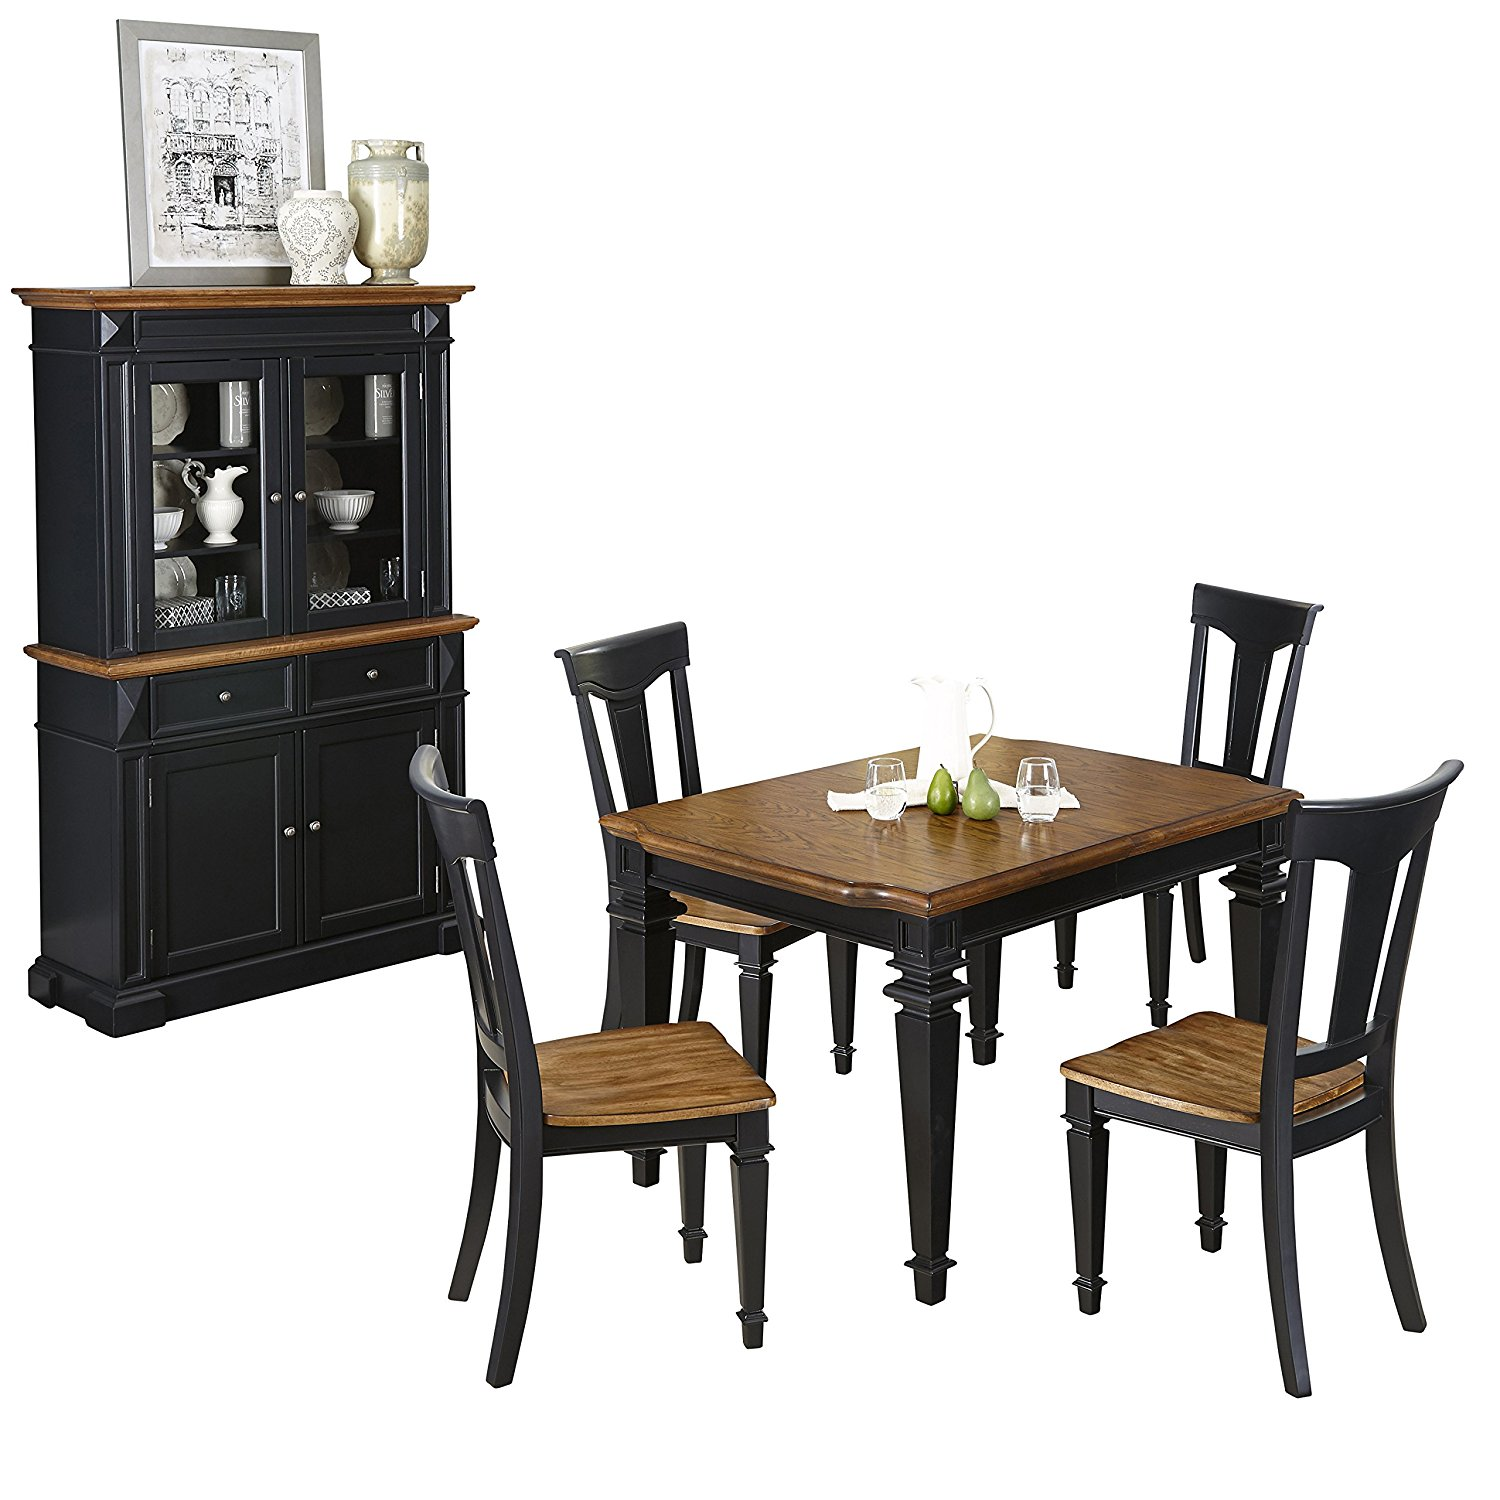 Get Quotations Home Styles 5003 3487 5 Piece Americana Dining Set With Buffet And Hutch